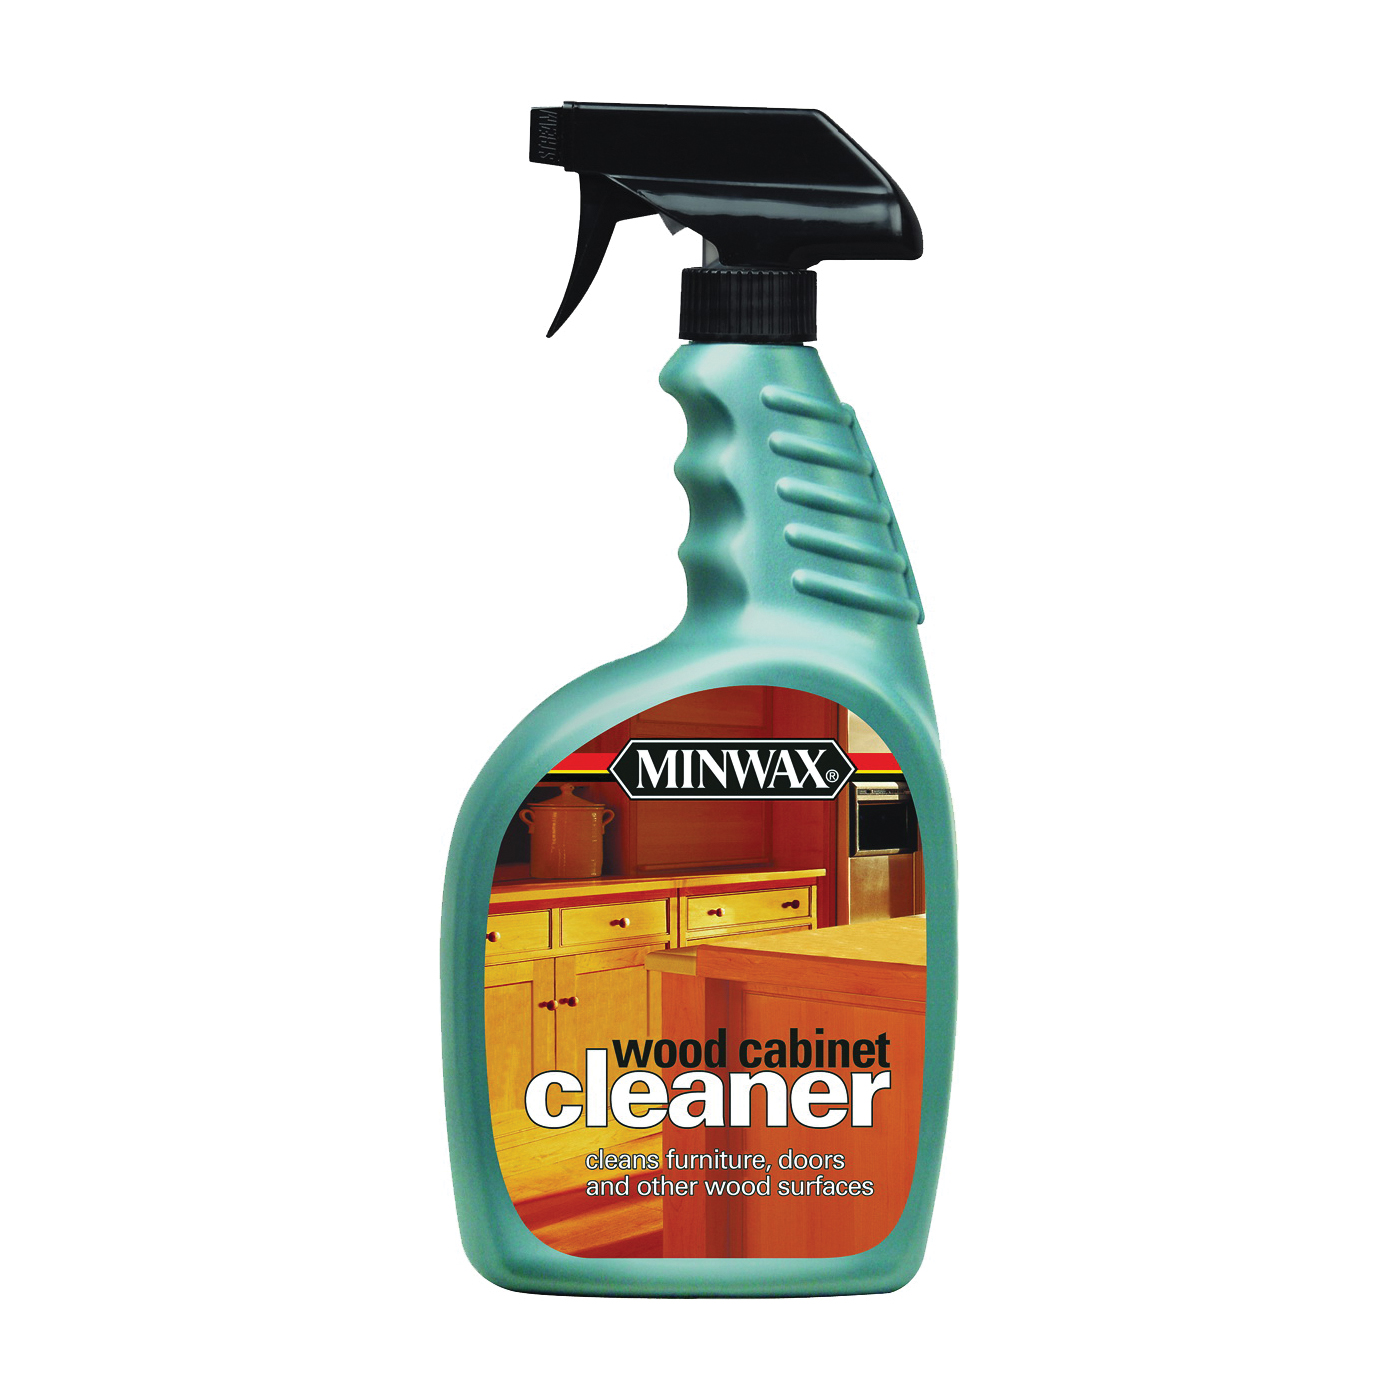 Picture of Minwax 521270004 Wood Cabinet Cleaner, 35 oz Package, Bottle, Liquid